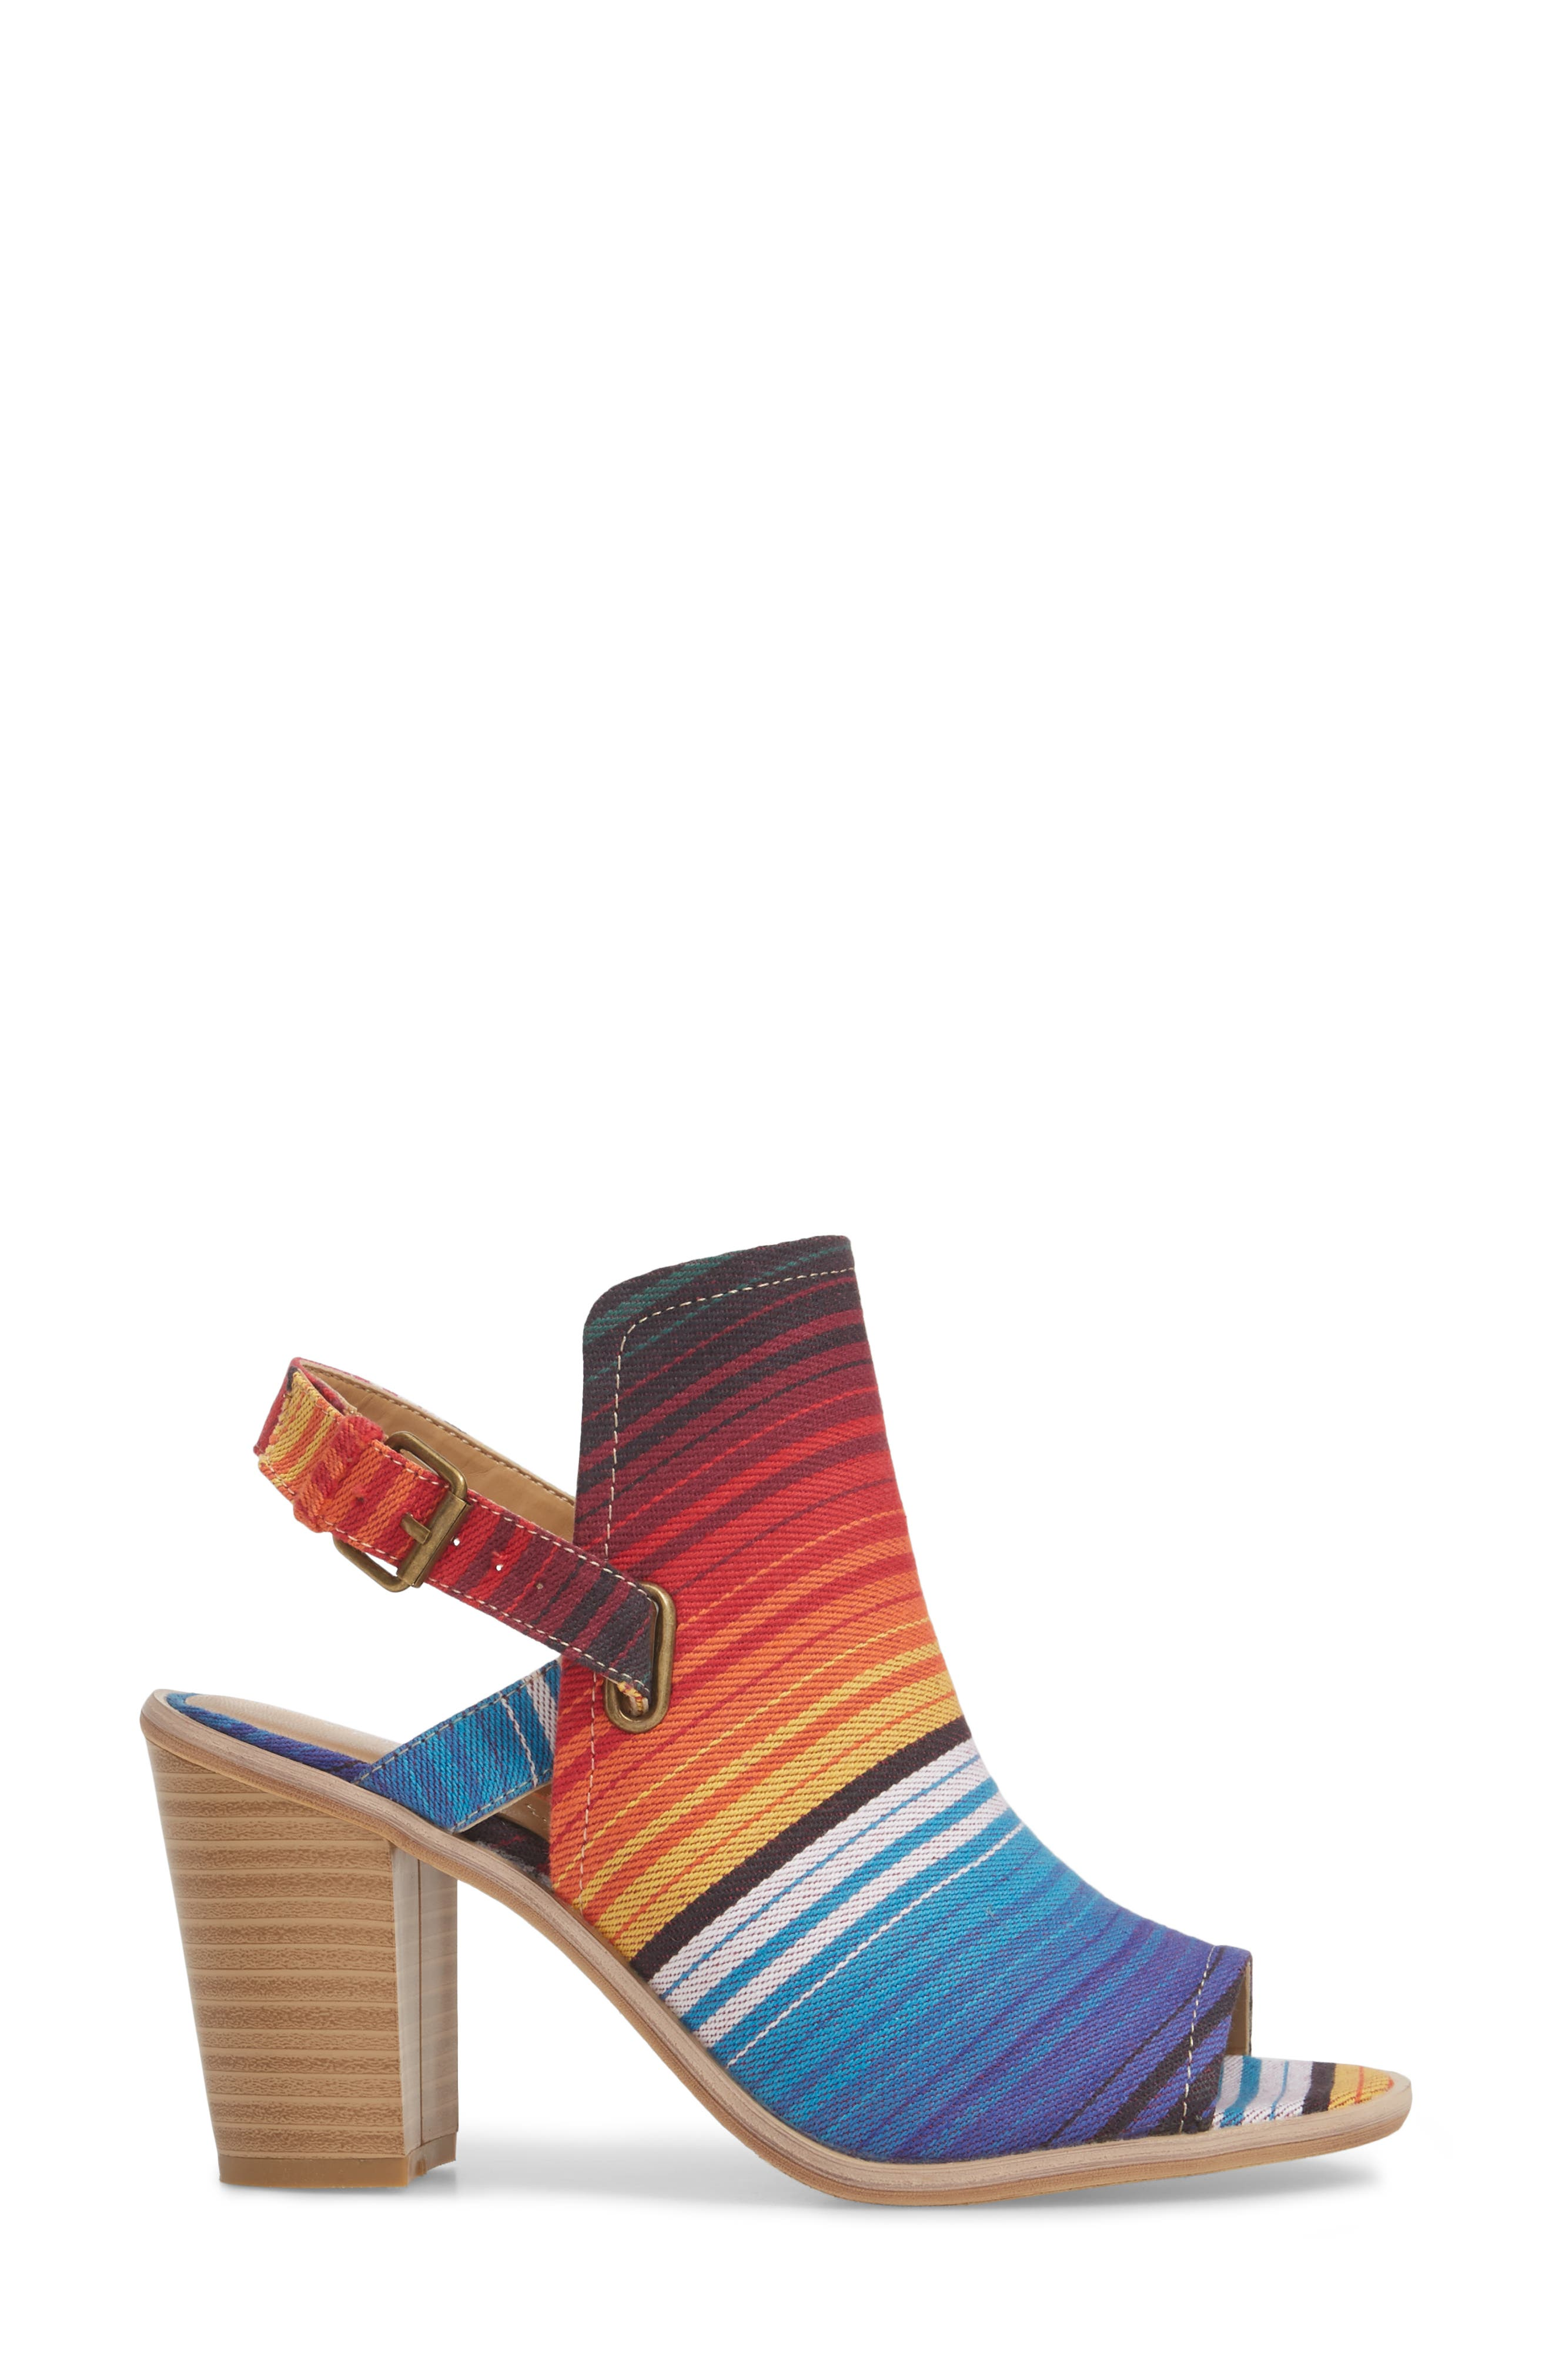 Kerstin Sandal,                             Alternate thumbnail 3, color,                             Serape